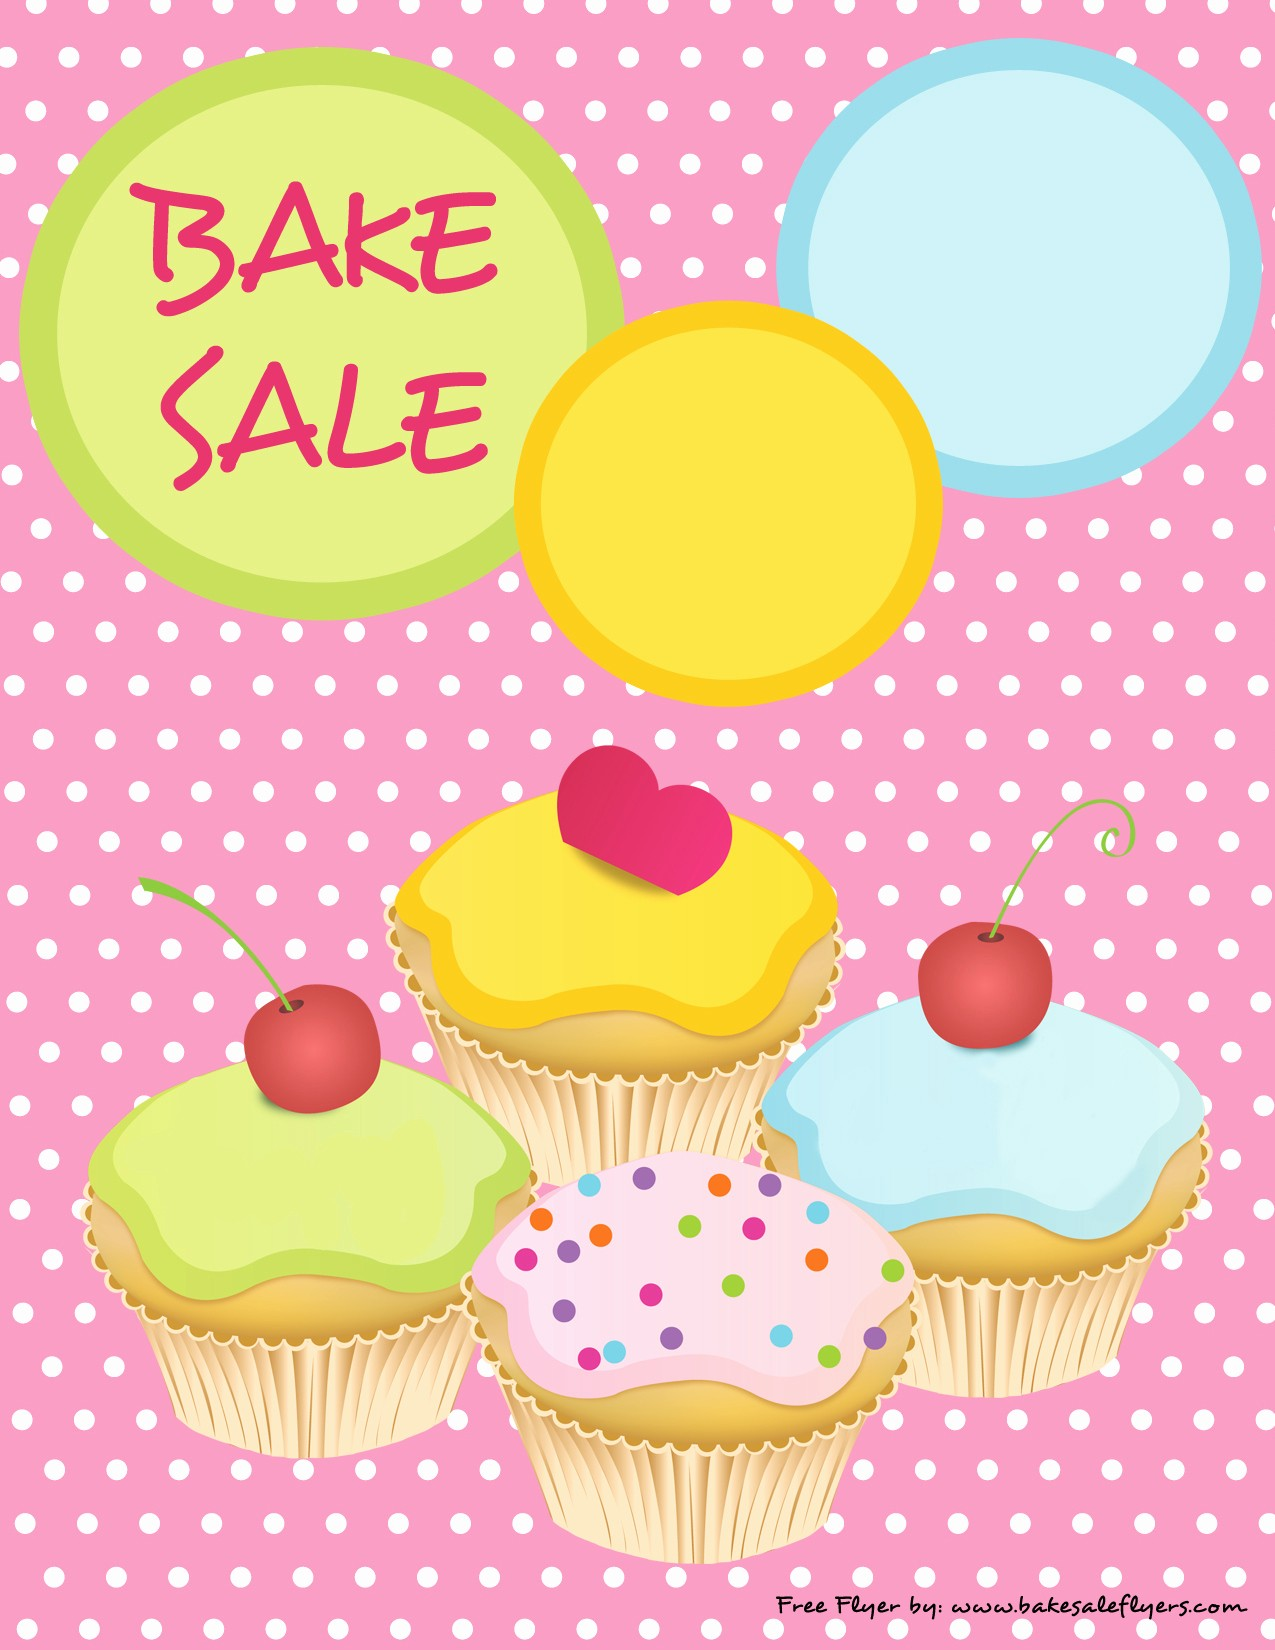 Bake Sale Flyer Template Free Unique Bake Sale Flyers – Free Flyer Designs